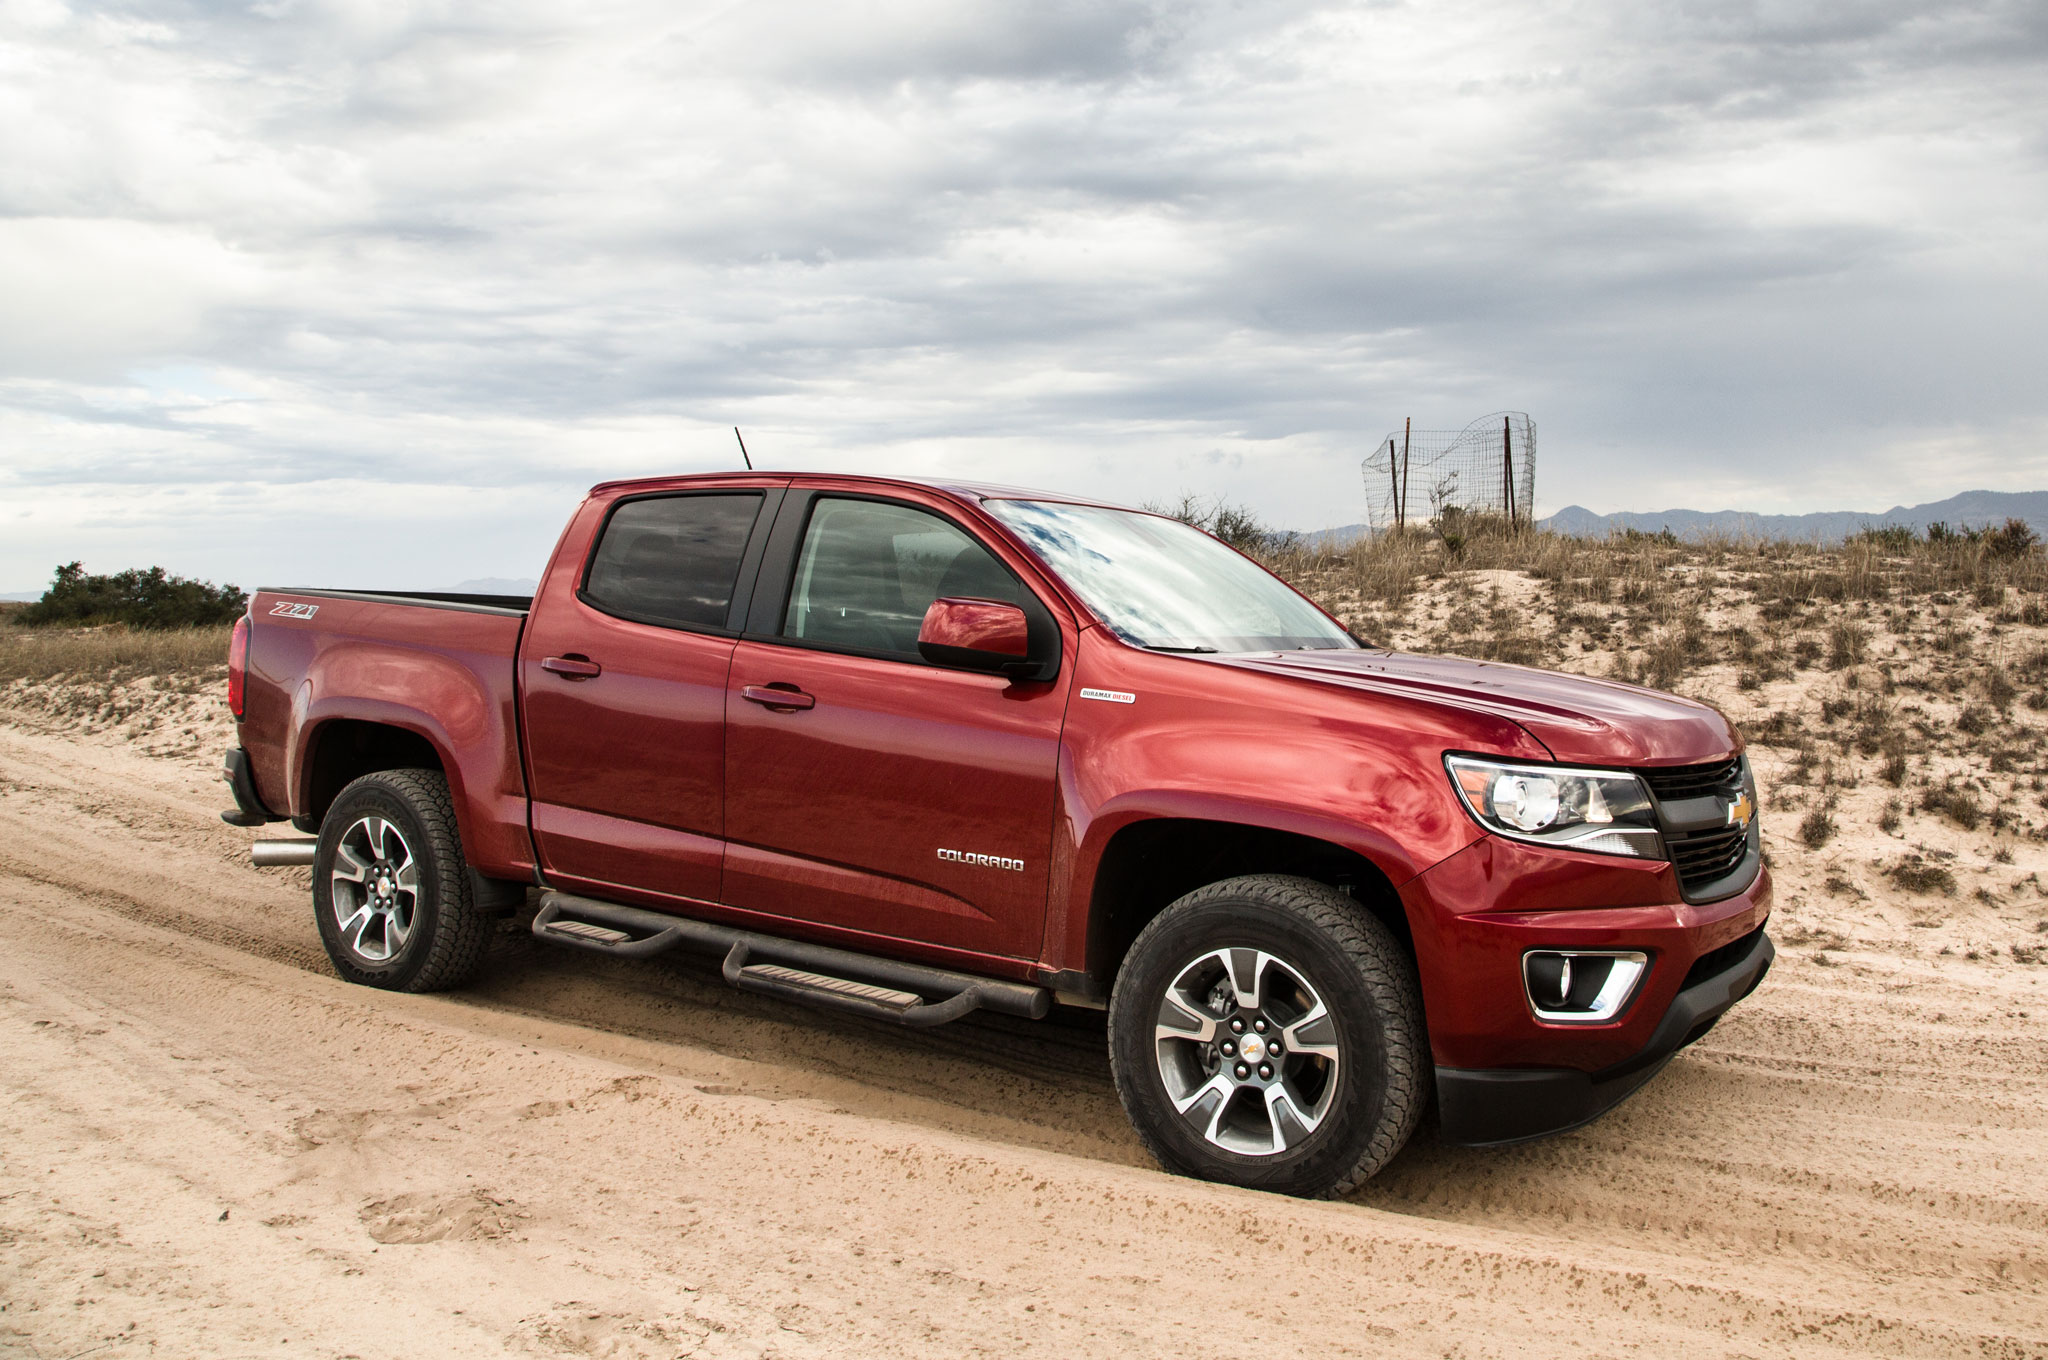 2016 chevrolet colorado diesel gets 31 mpg highway. Black Bedroom Furniture Sets. Home Design Ideas